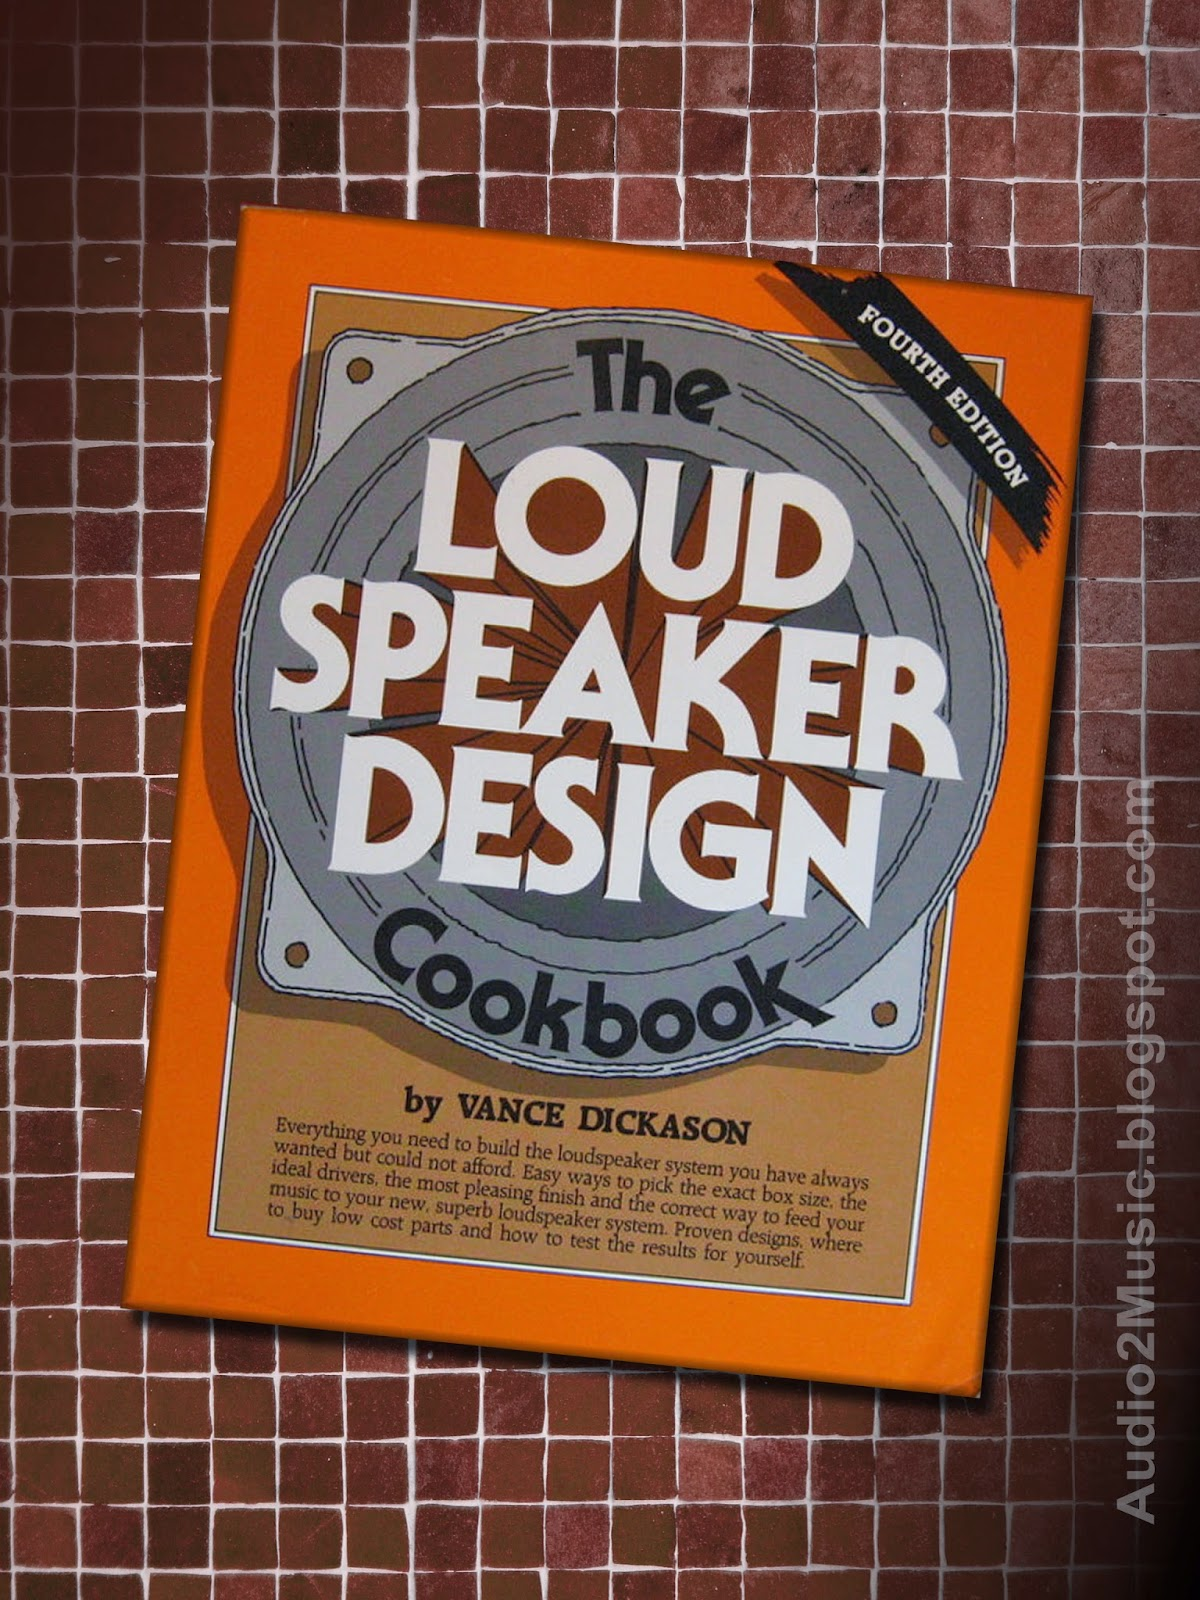 Image of The Loudspeaker Design Cookbook by Vance Dickason over a tile table